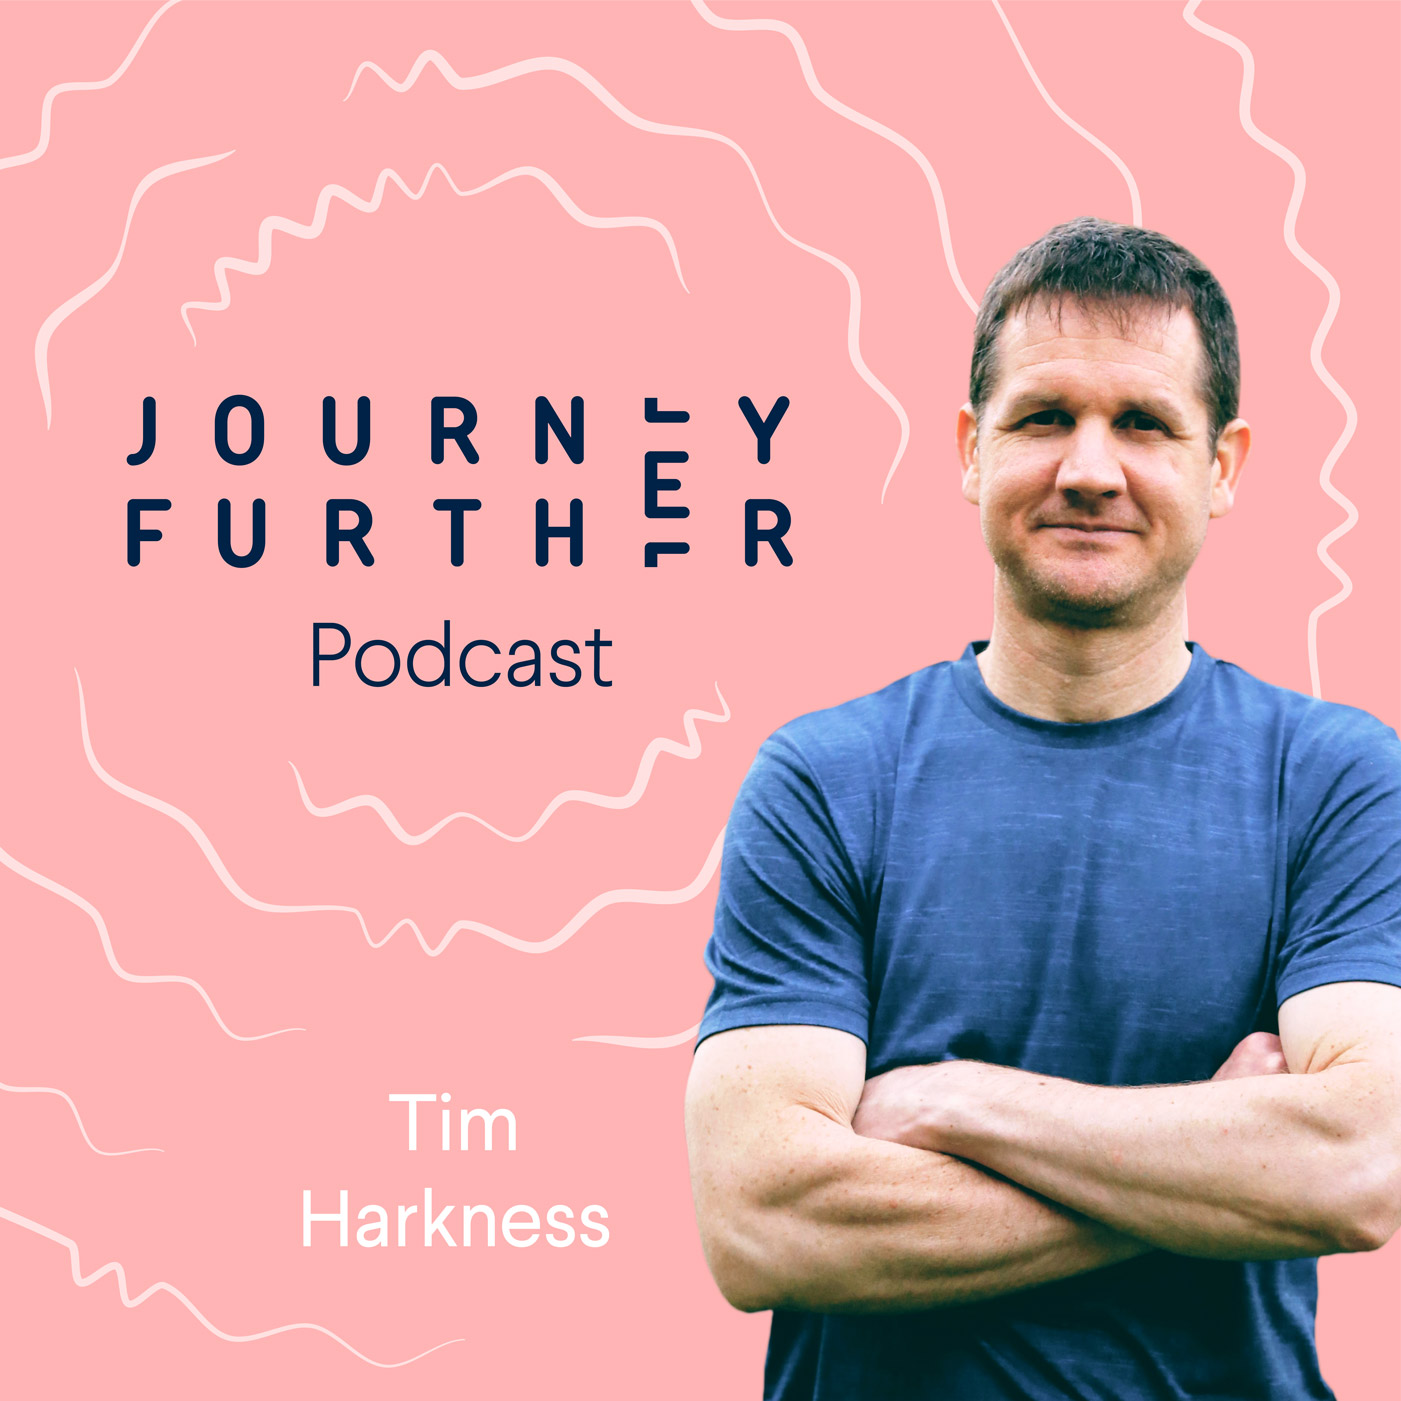 10 Rules For Talking with Tim Harkness